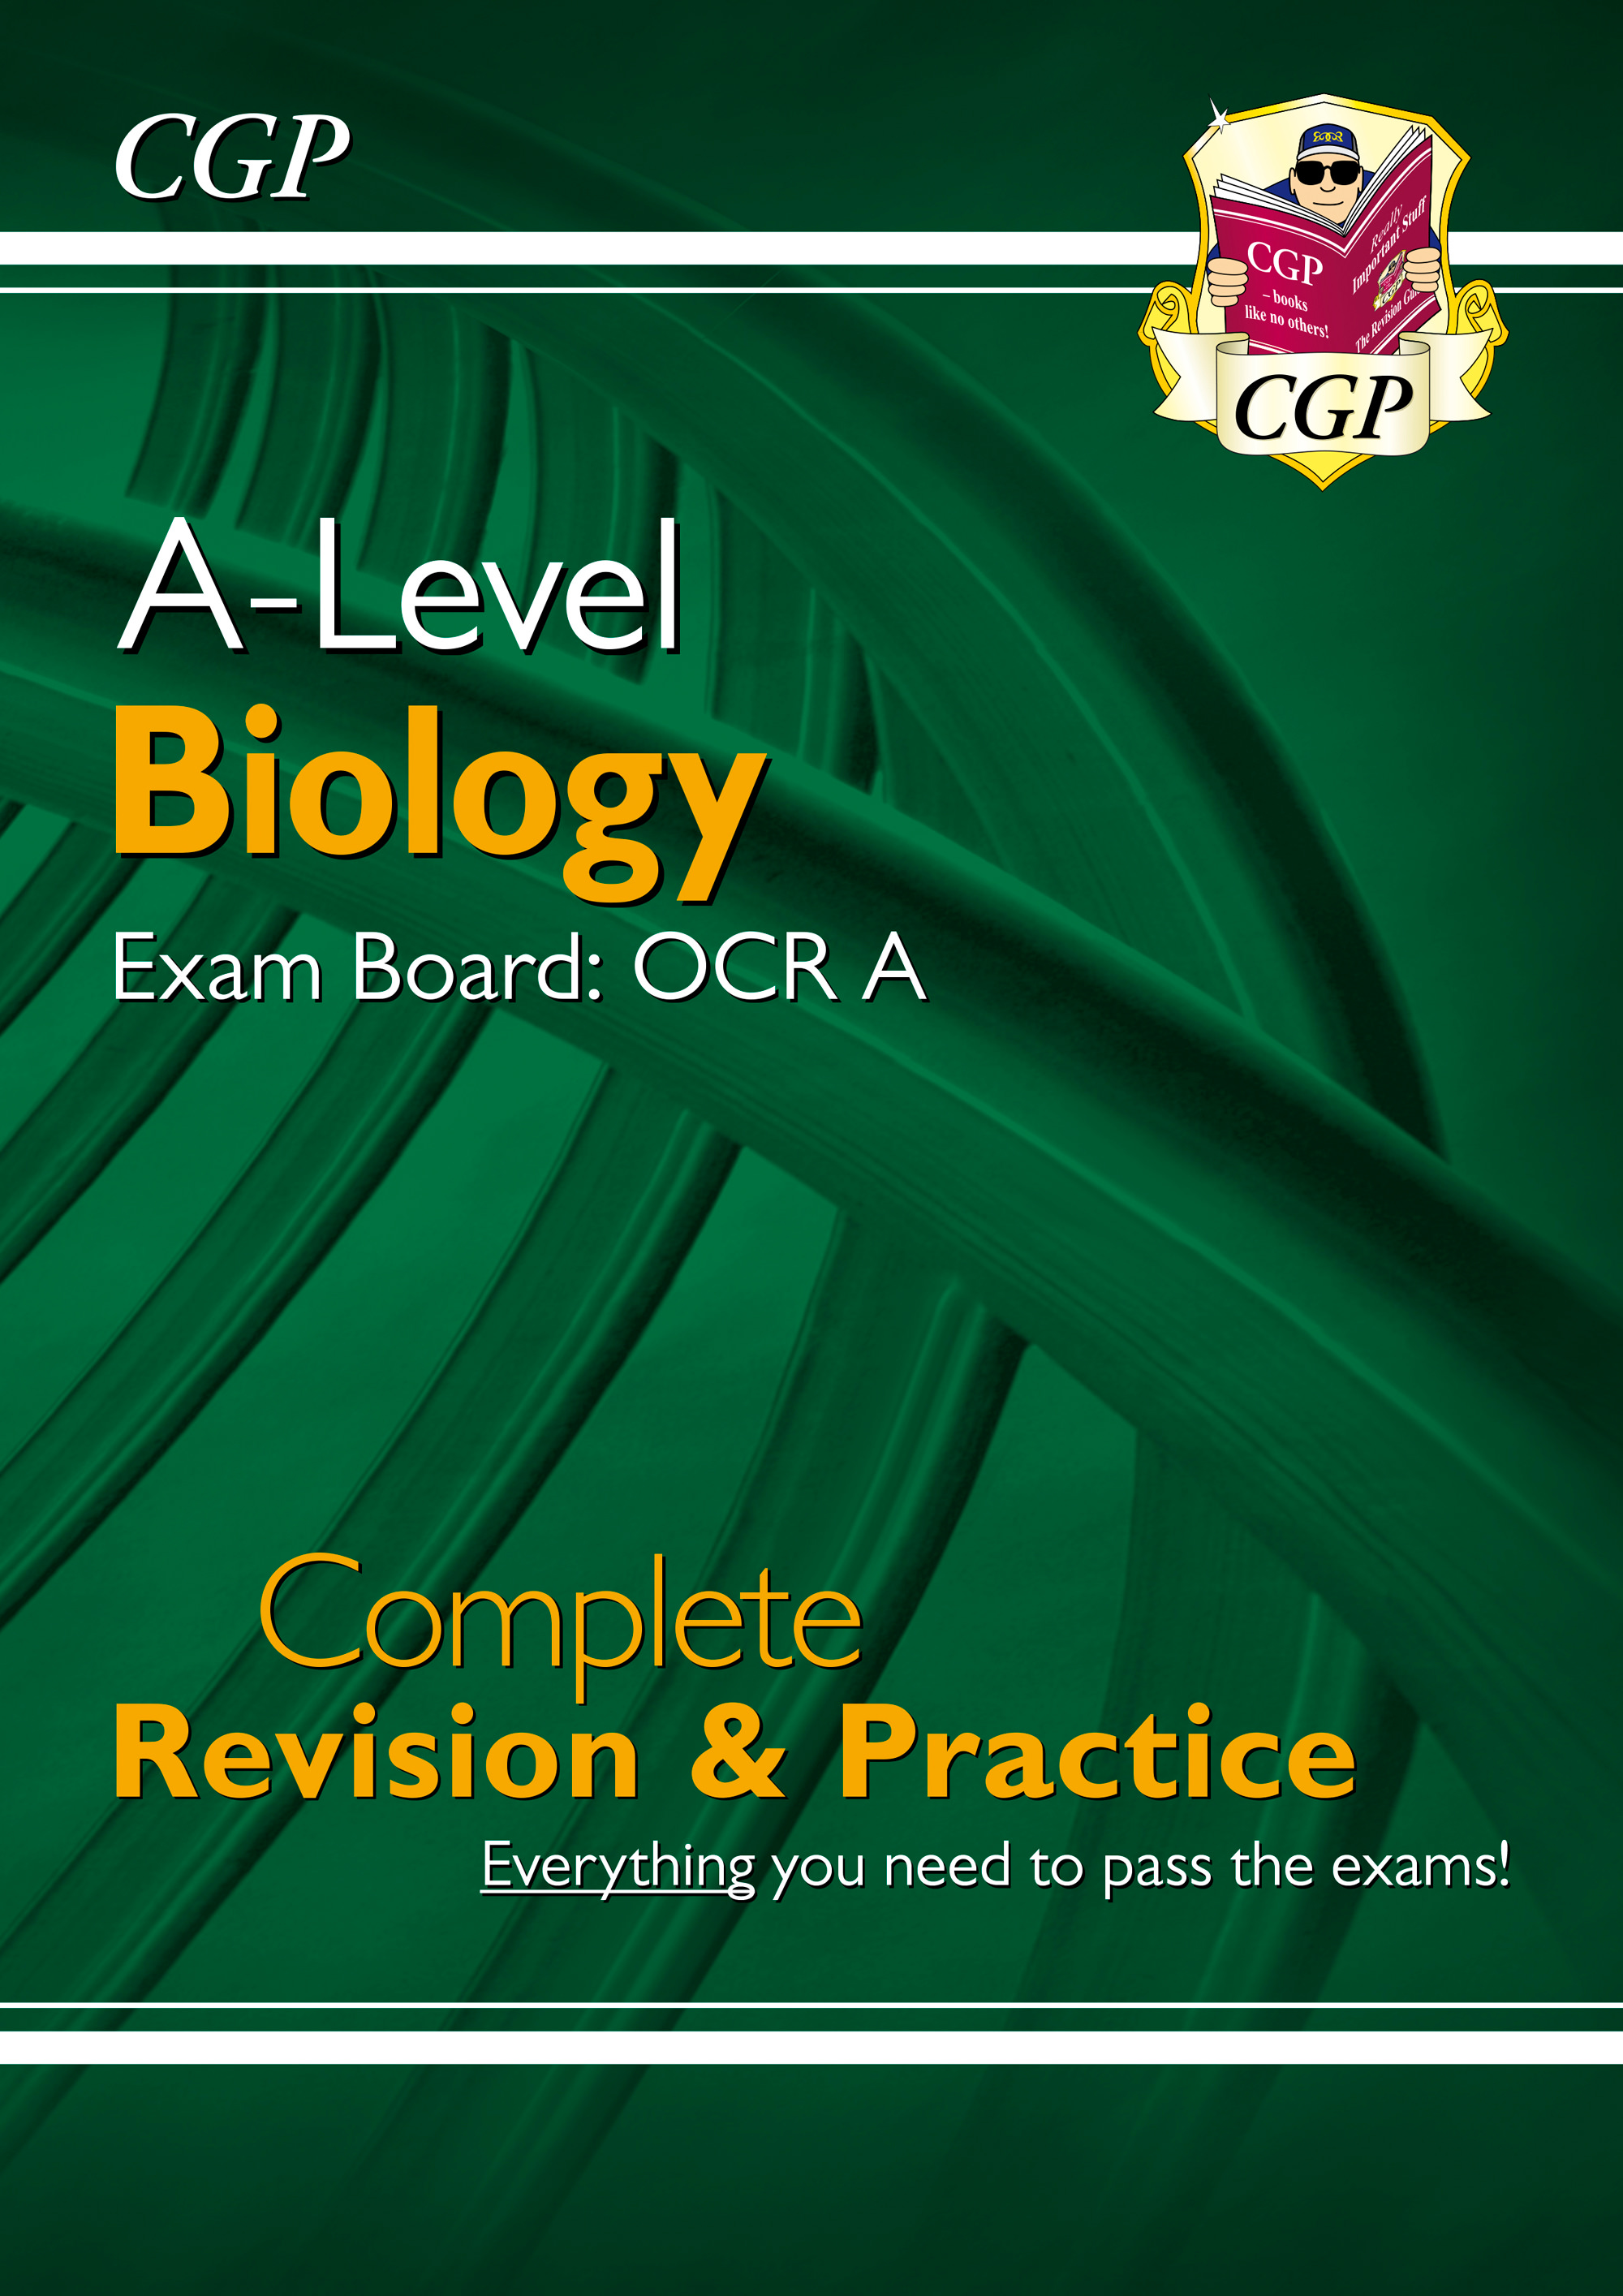 BRAR73DK - New A-Level Biology for 2018: OCR A Year 1 & 2 Complete Revision & Practice